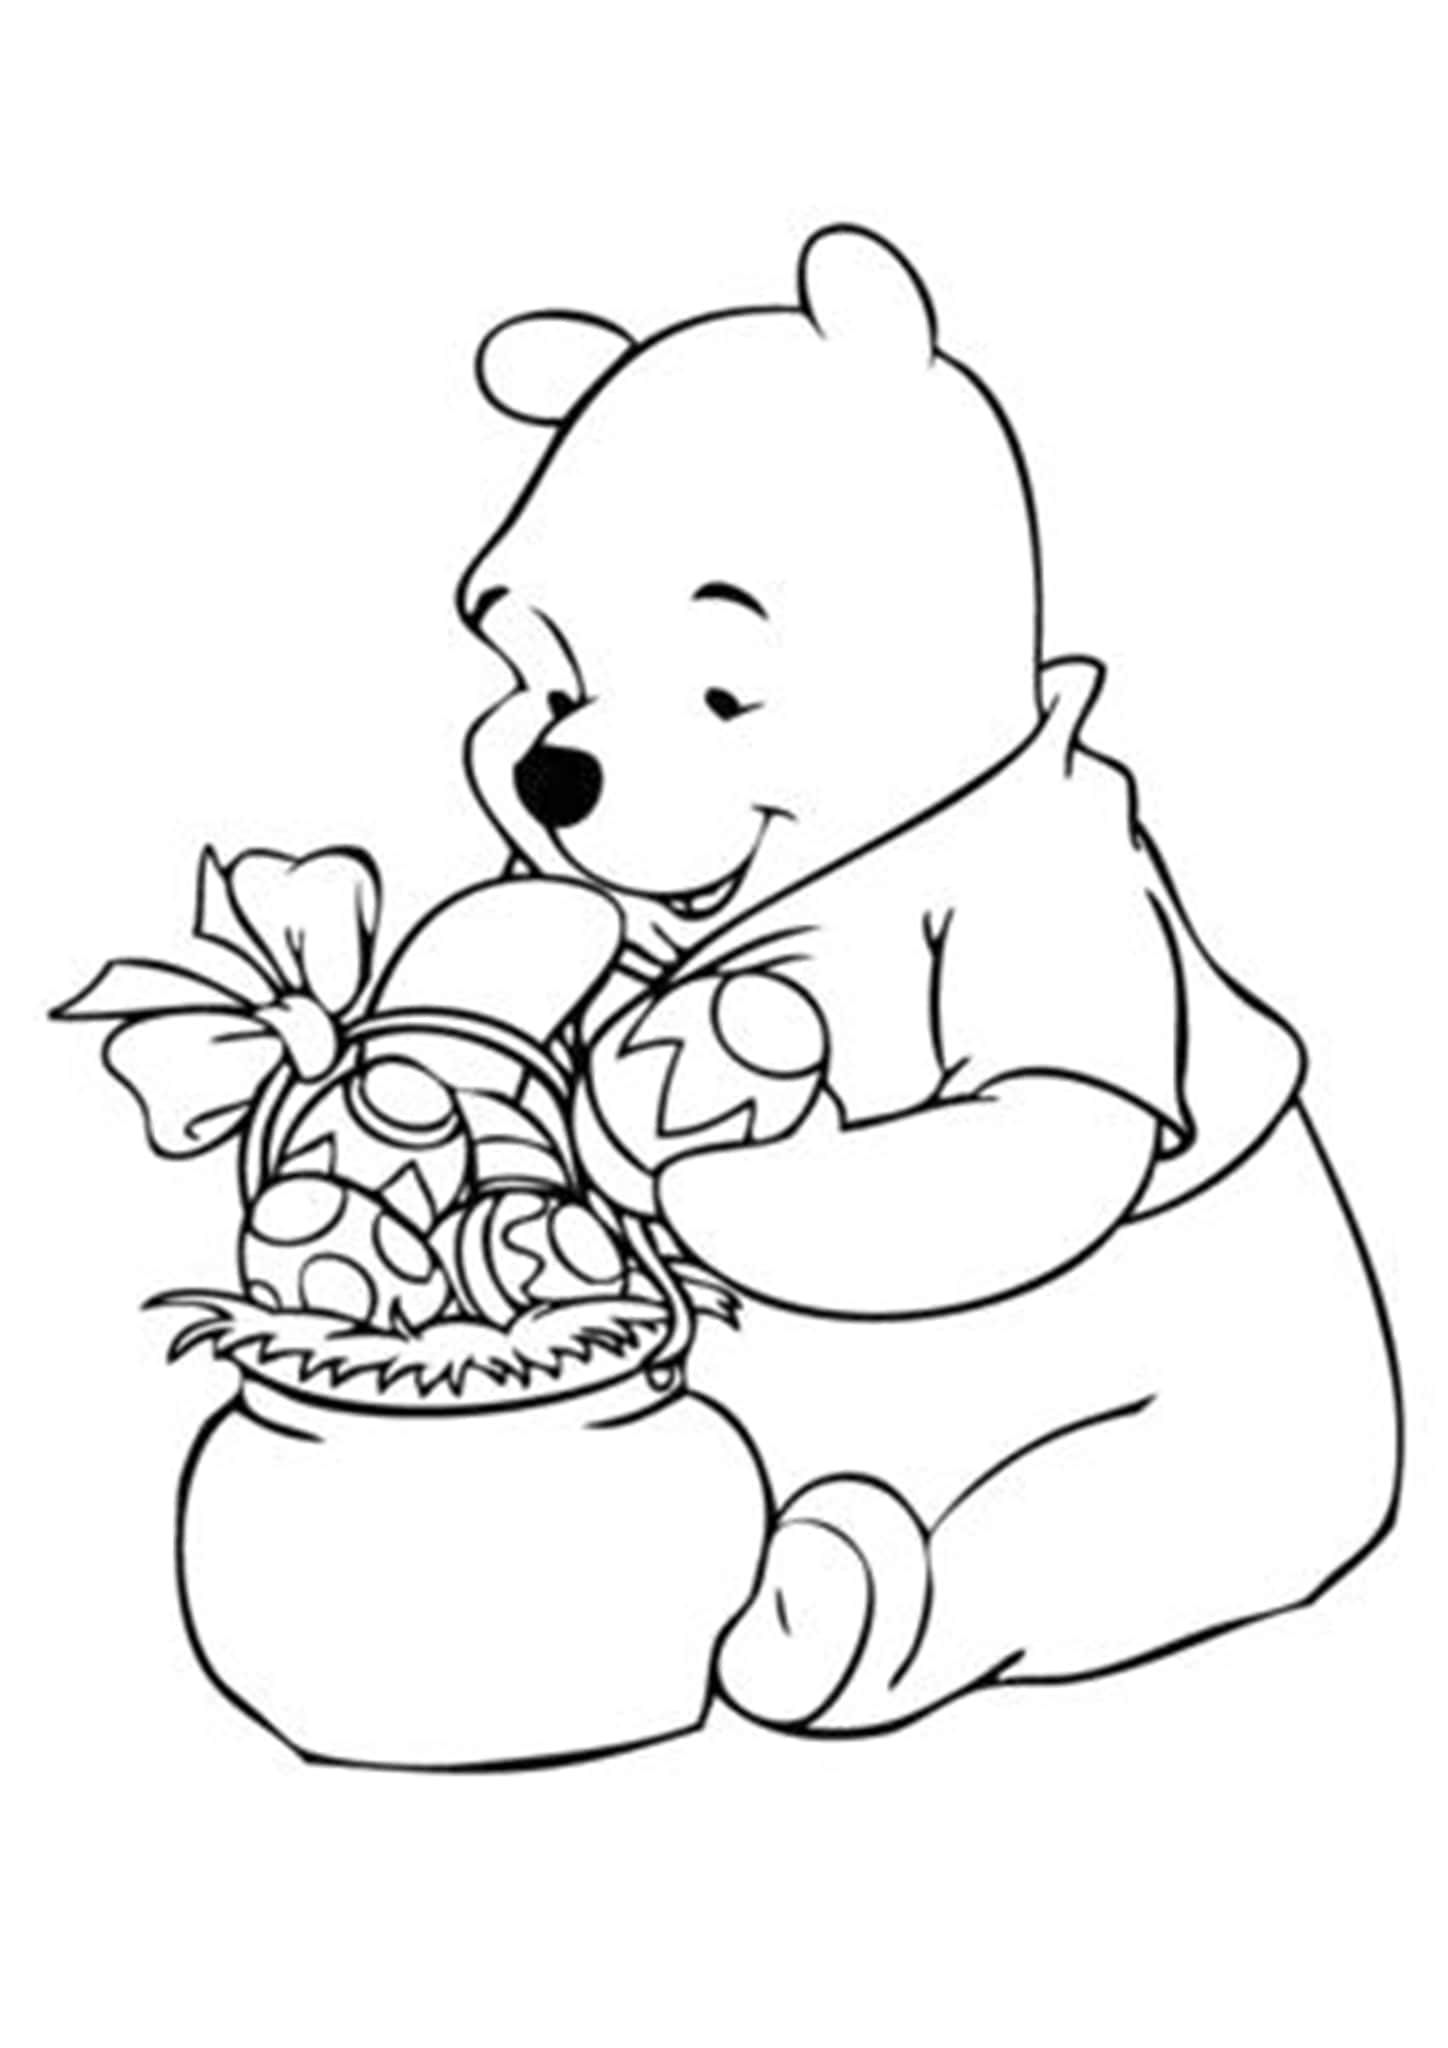 Free Easy To Print Winnie The Pooh Coloring Pages Easter Coloring Pages Disney Coloring Pages Coloring Pages